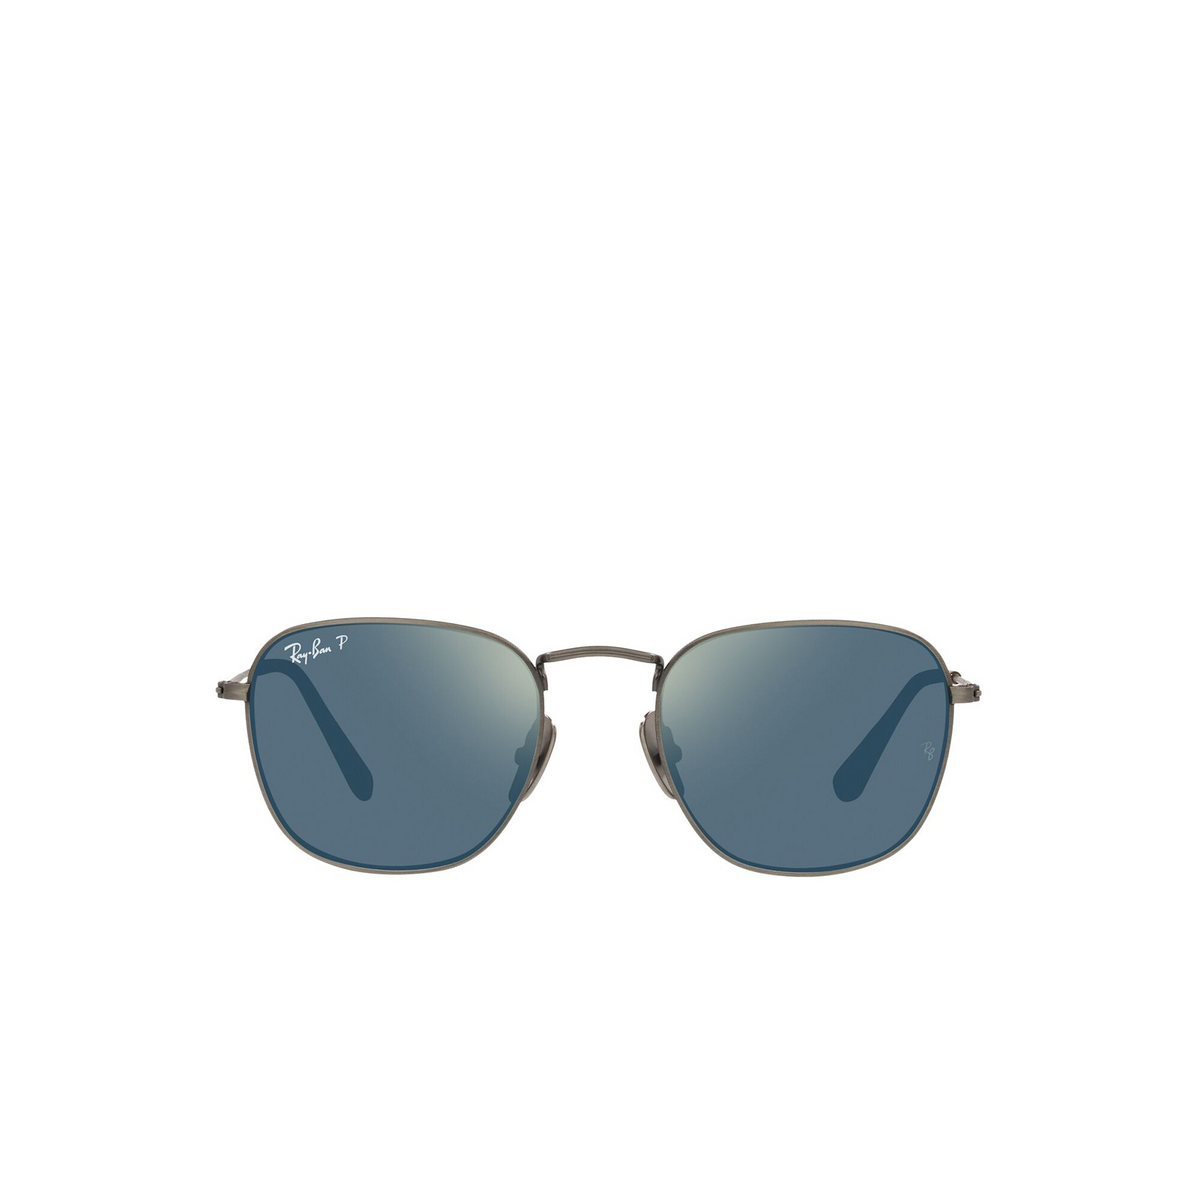 Ray-Ban® Square Sunglasses: Frank RB8157 color Demigloss Gunmetal 9208T0 - front view.